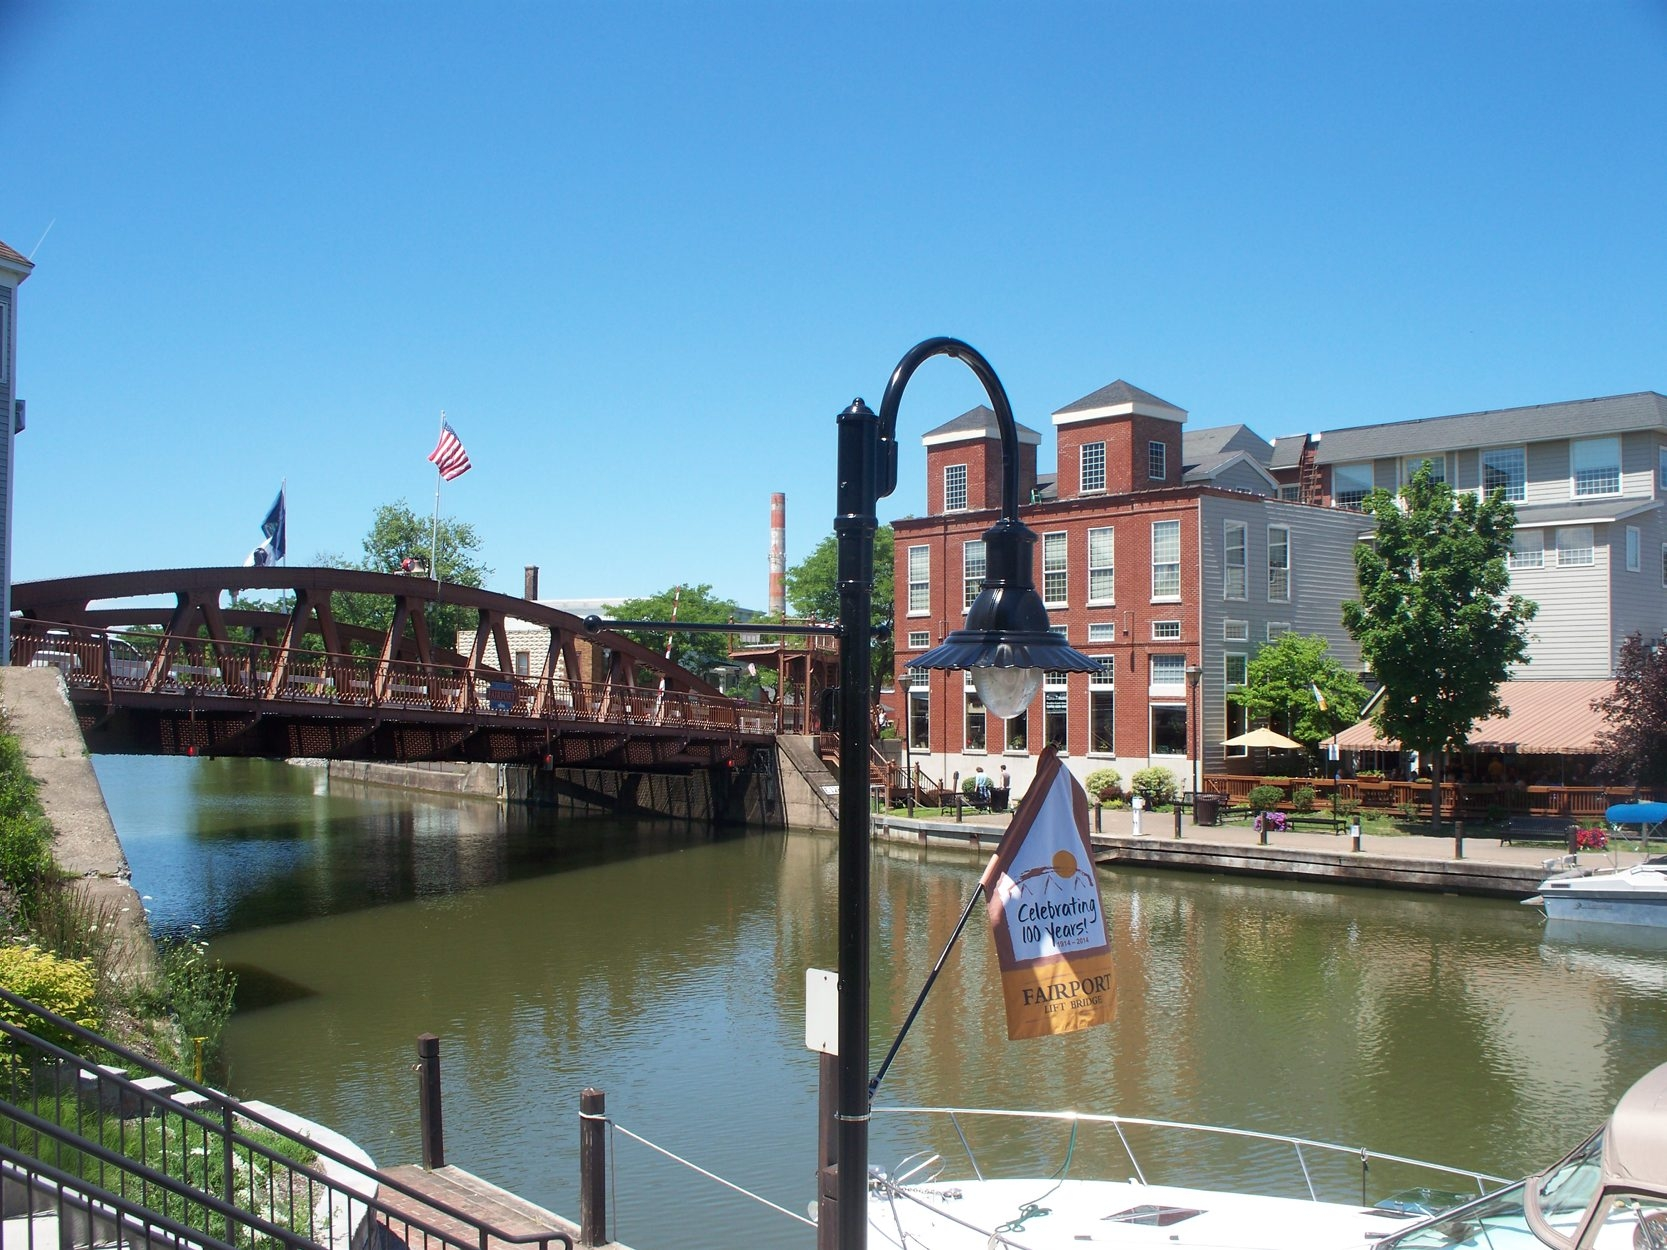 Fairport is one of the overnight stops on the Cycle the Erie Canal tour, which follows the canal from Buffalo to Albany. This year's ride begins Sunday.